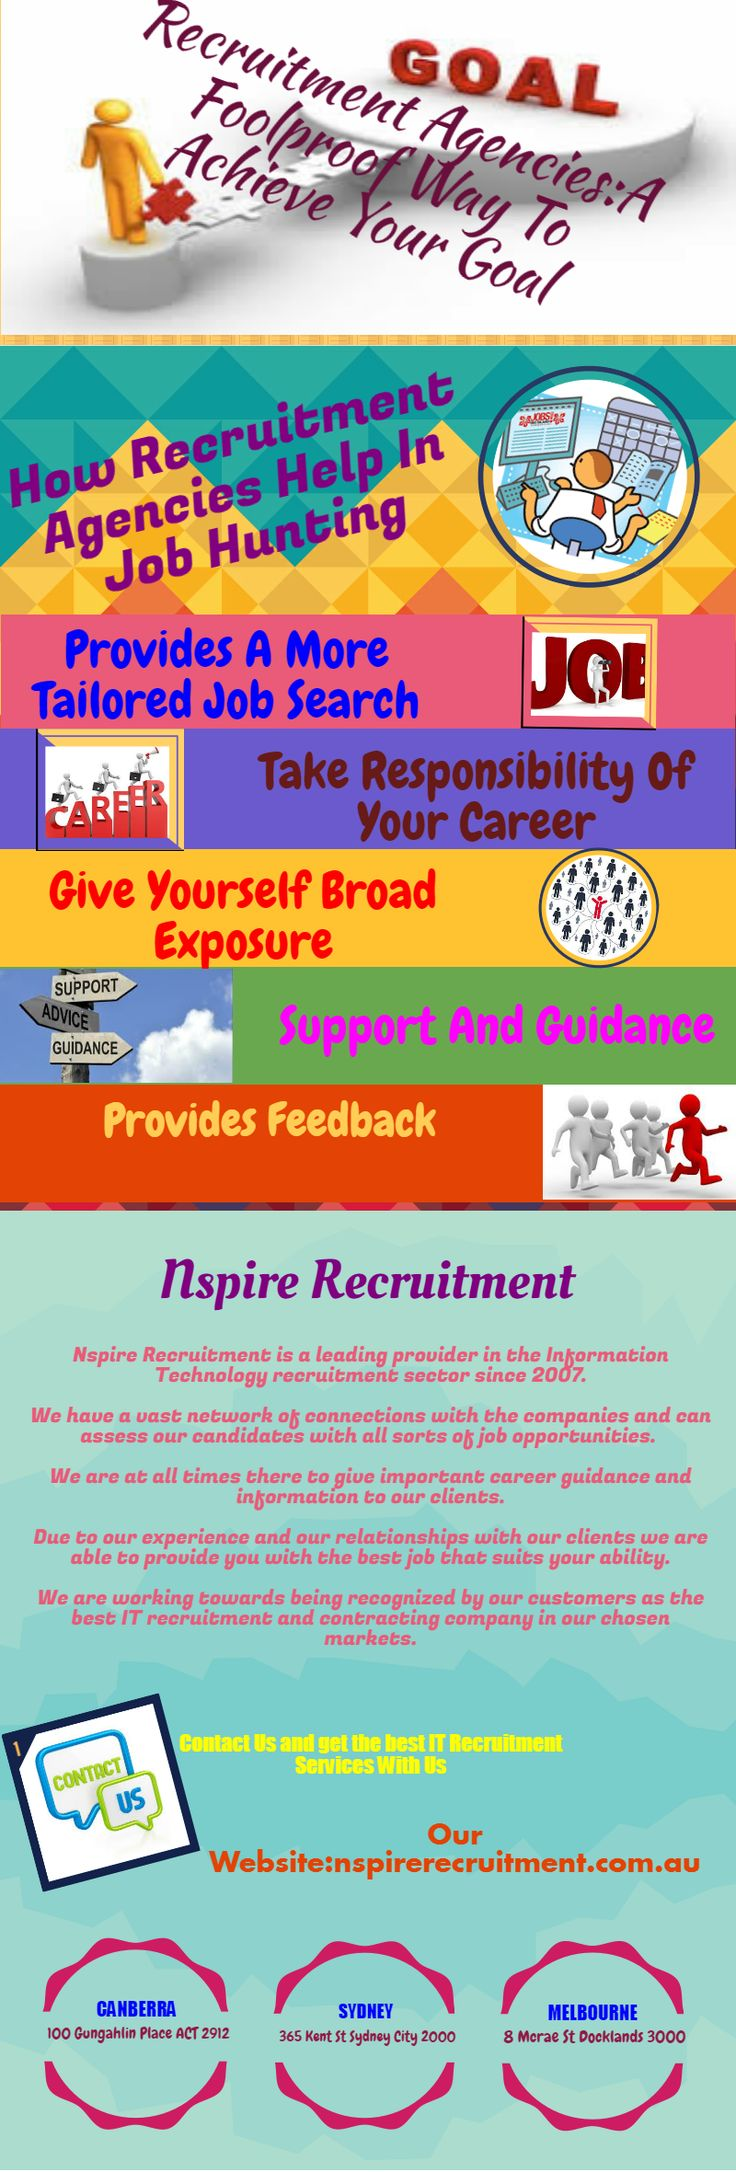 Nspire Recruitment is working since 2007 for placing candidates in a variety of specialties and in a variety of markets.